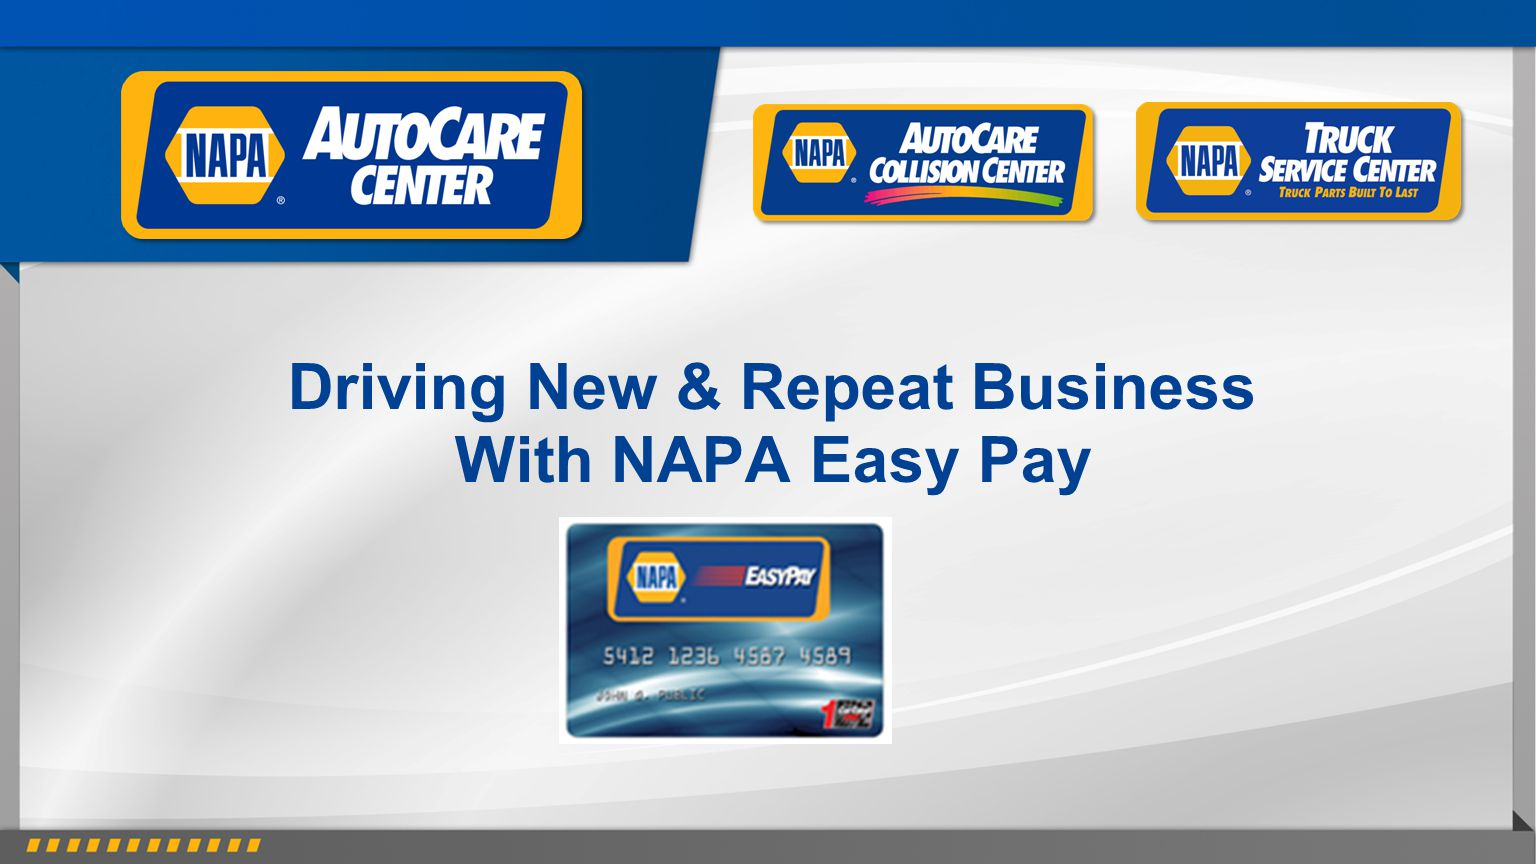 Driving New & Repeat Business With NAPA Easy Pay